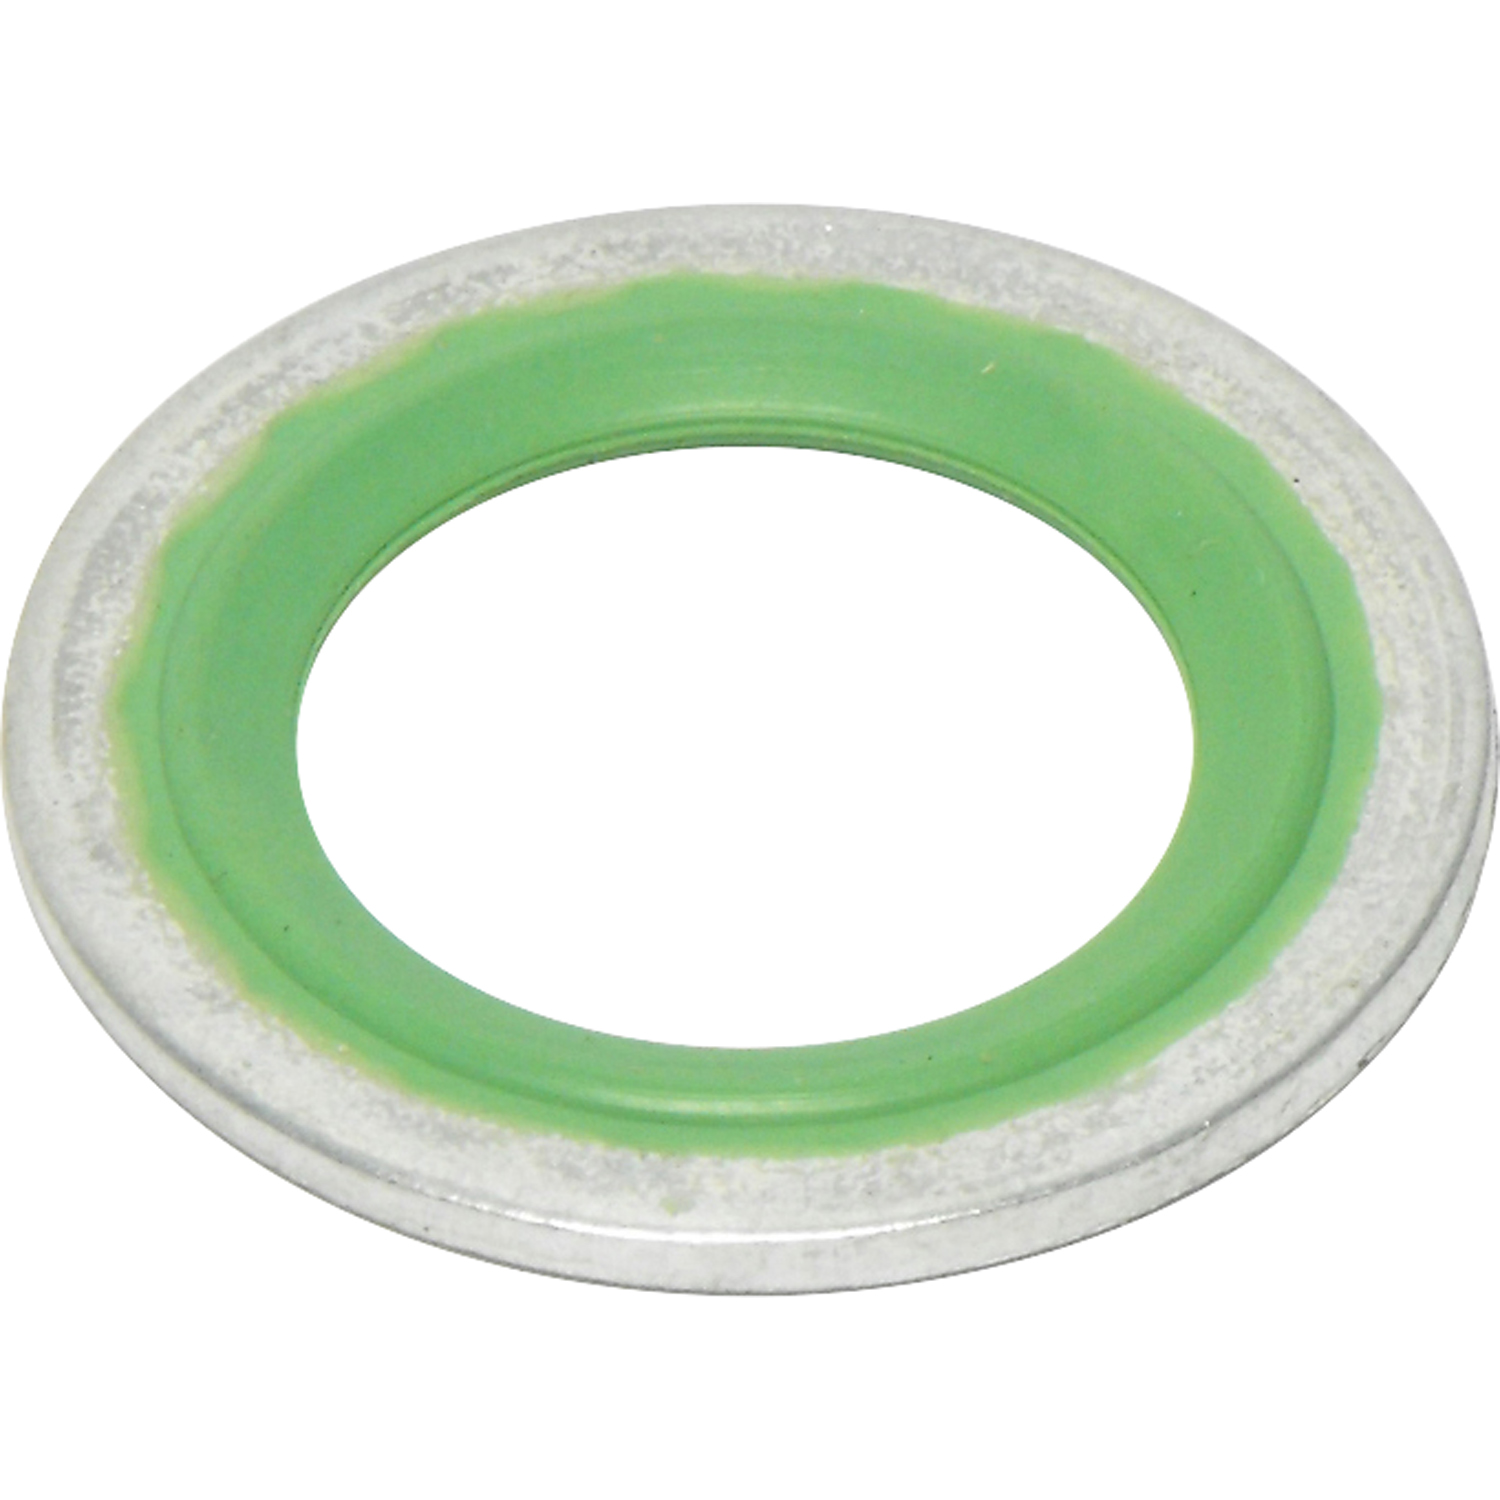 Sealing Washer Round STAT-O-SEAL FREIGHTLINER 14.22MM I.D.